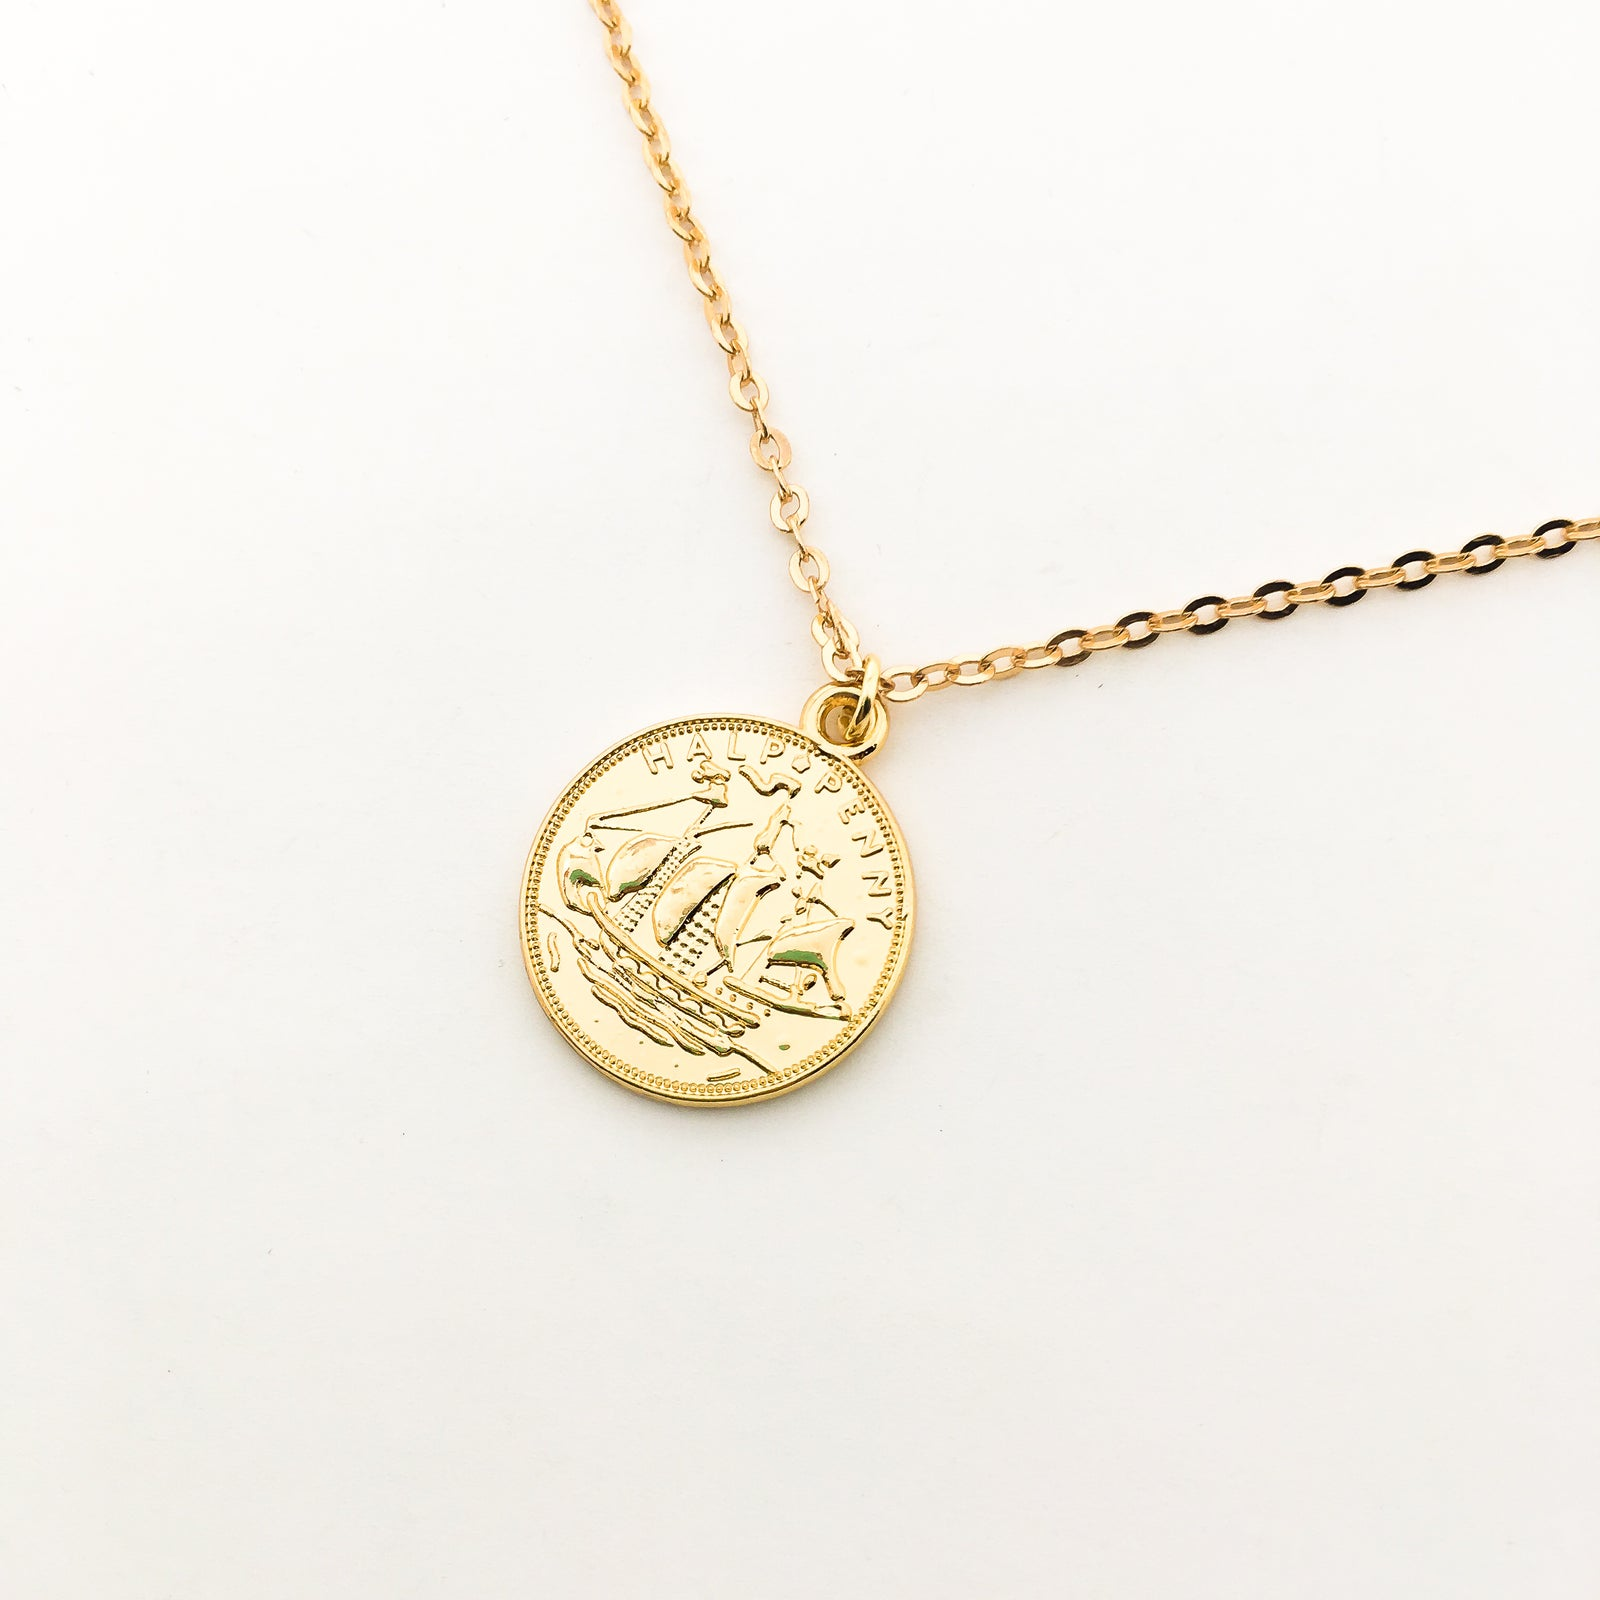 DOUBLE-SIDED ELIZABETH COIN NECKLACES | GOLD | SIZE OPTIONS